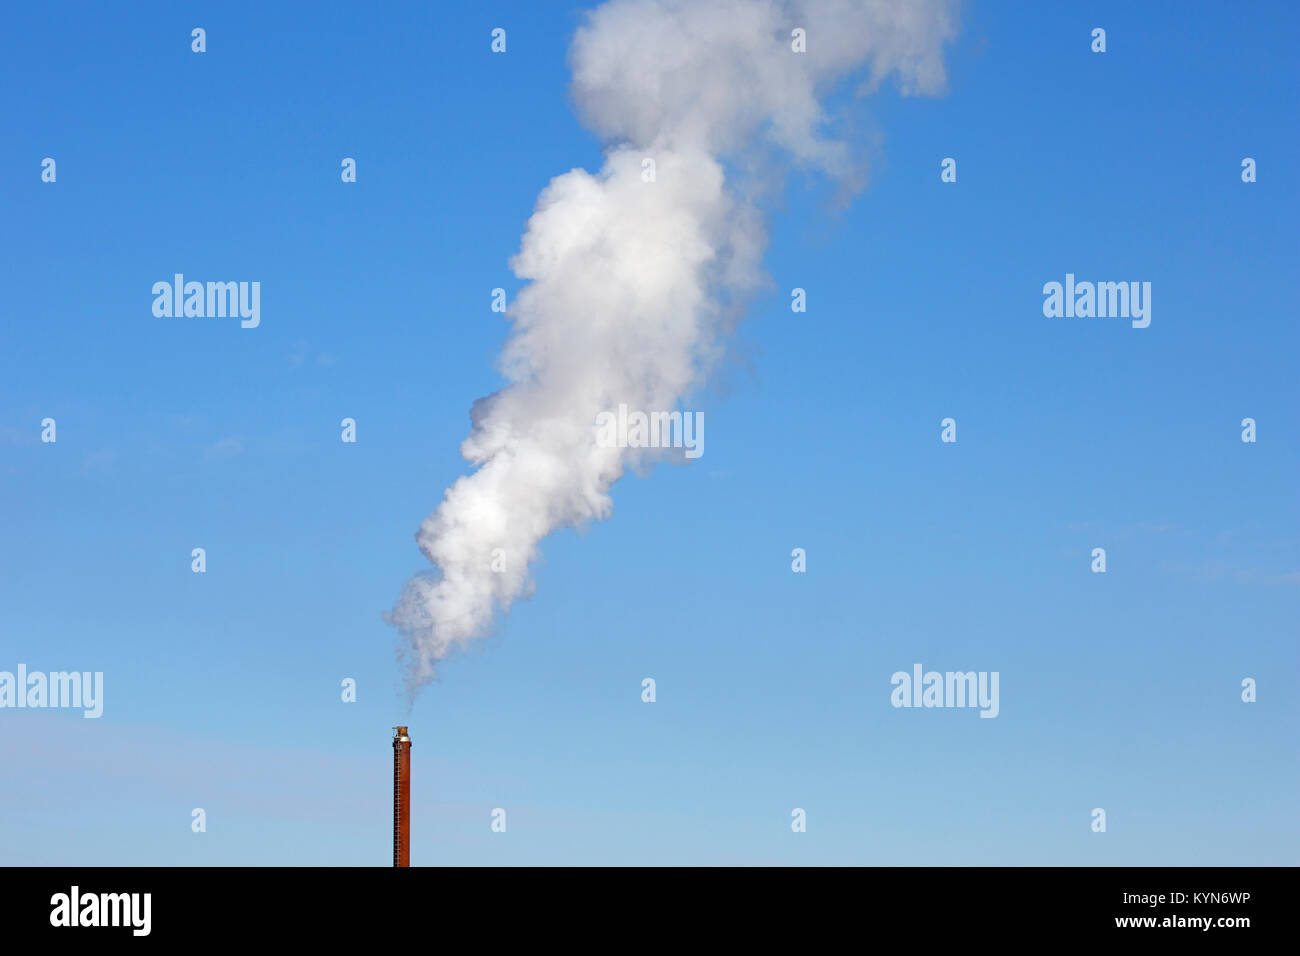 Industrial chimney / smoke stack / smokestack against blue sky on a windless day - Stock Image